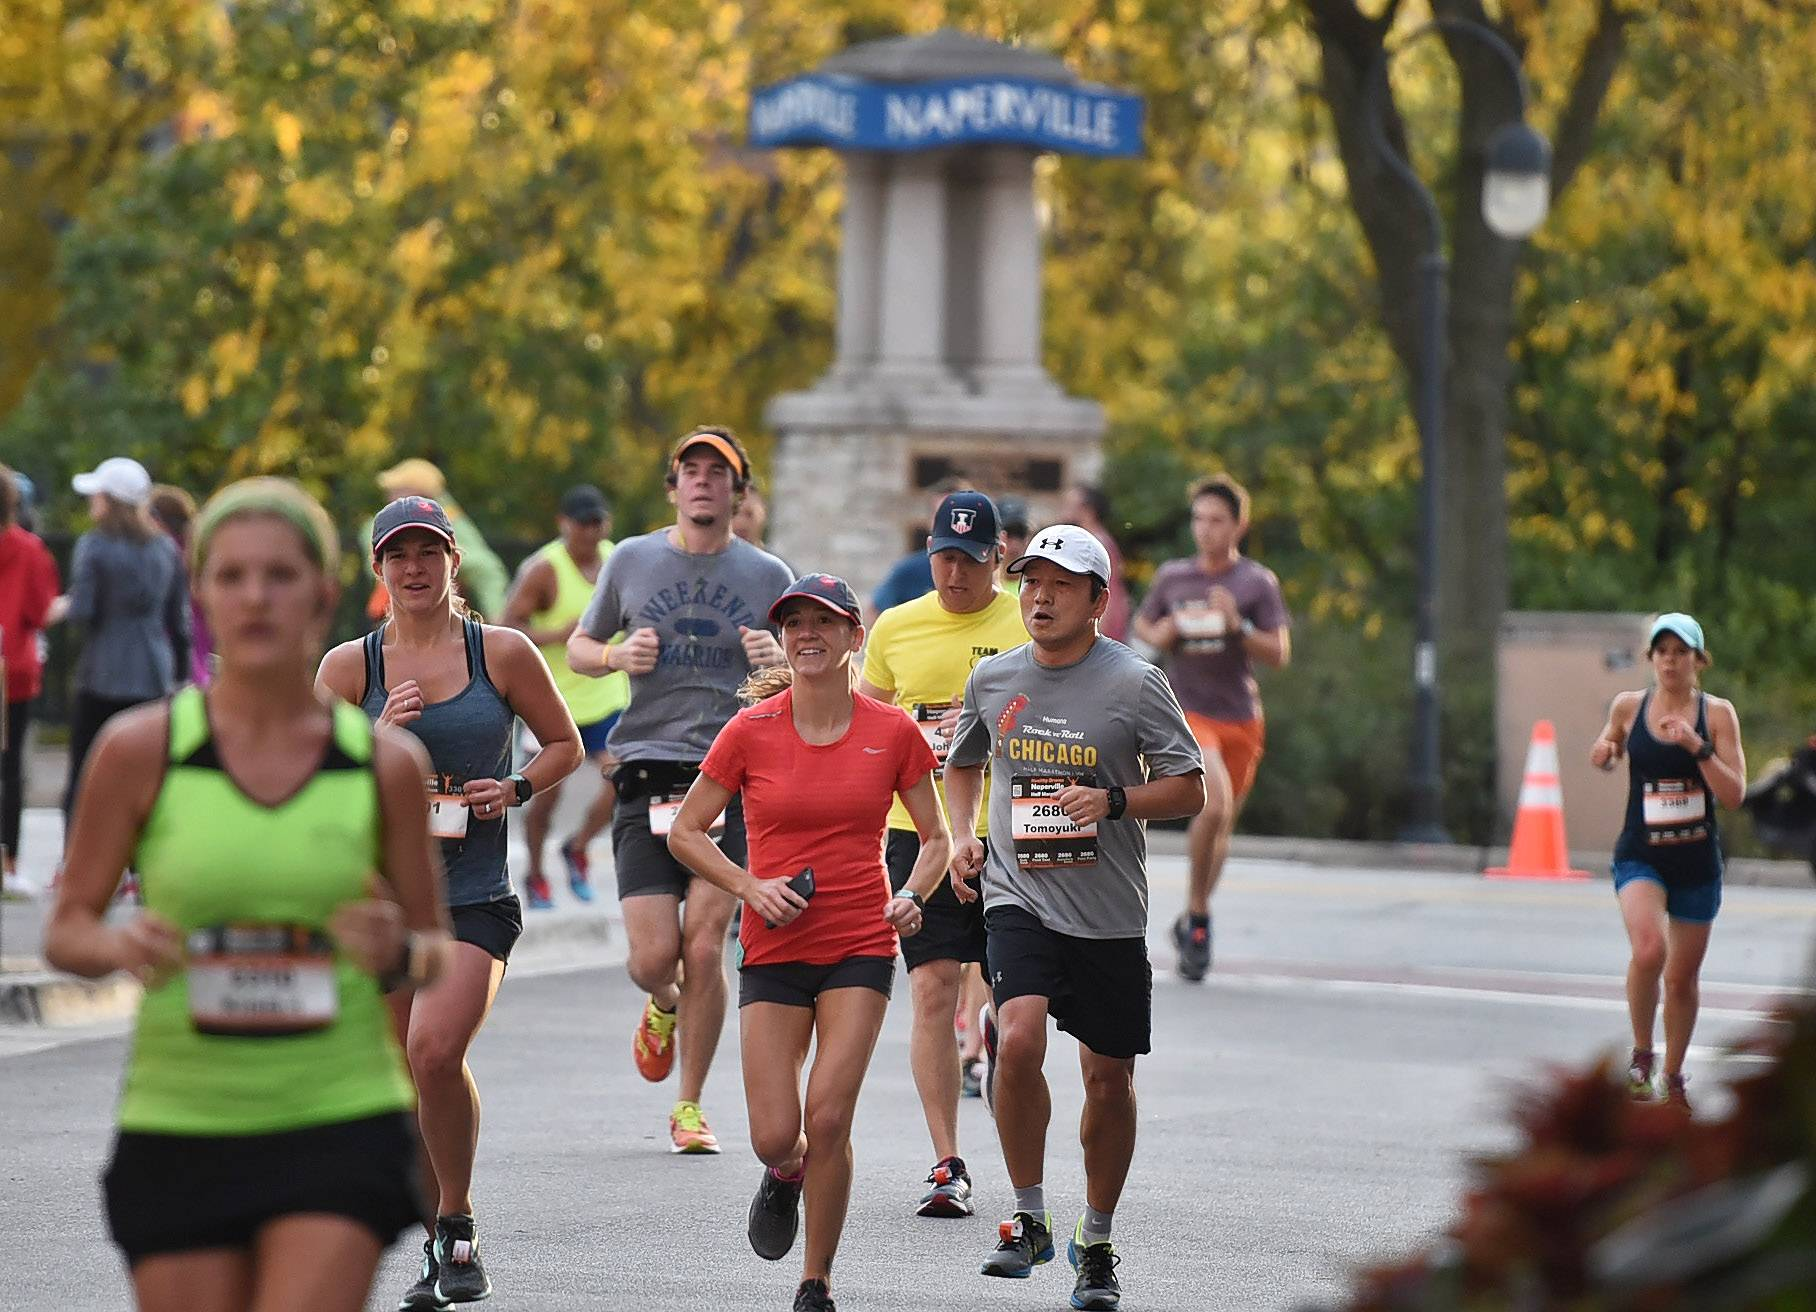 Runners proceed along Water Street during the Healthy Driven Half Marathon in downtown Naperville. While it causes a 27 percent spike in parking demand, its early morning timing means customers of downtown businesses aren't affected, the race director says.